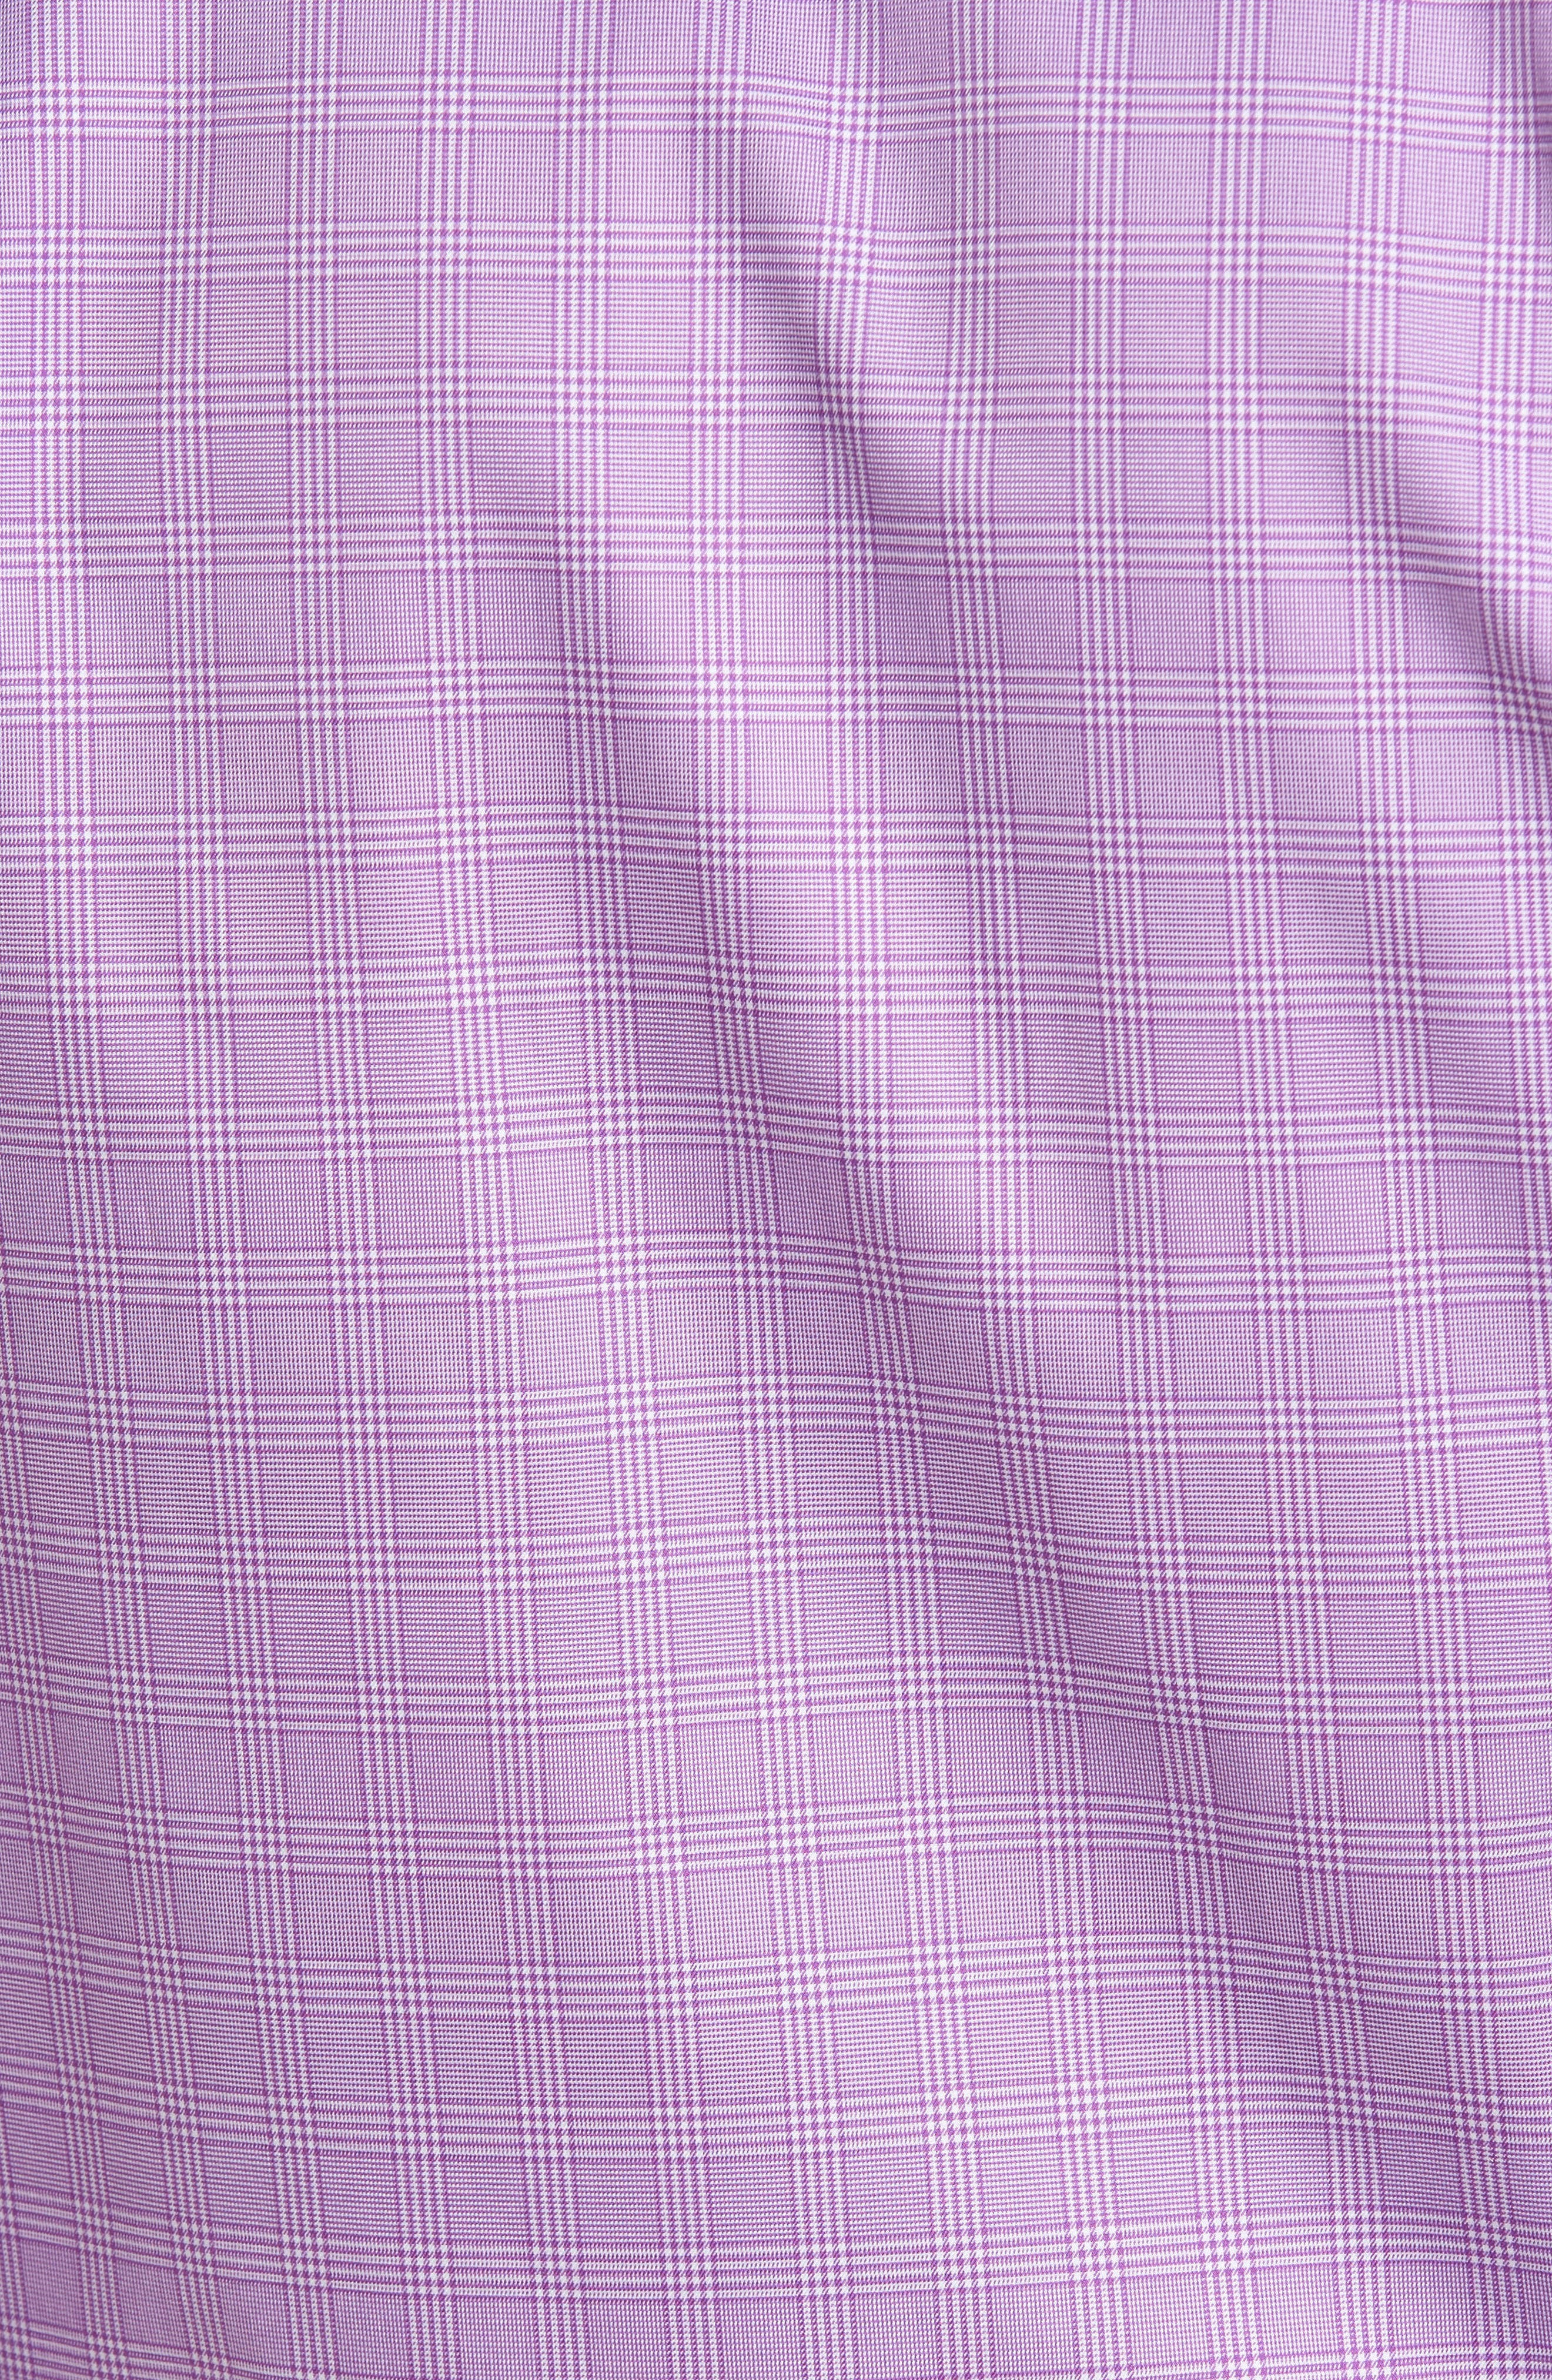 Regular Fit Plaid Sport Shirt,                             Alternate thumbnail 5, color,                             Lilac